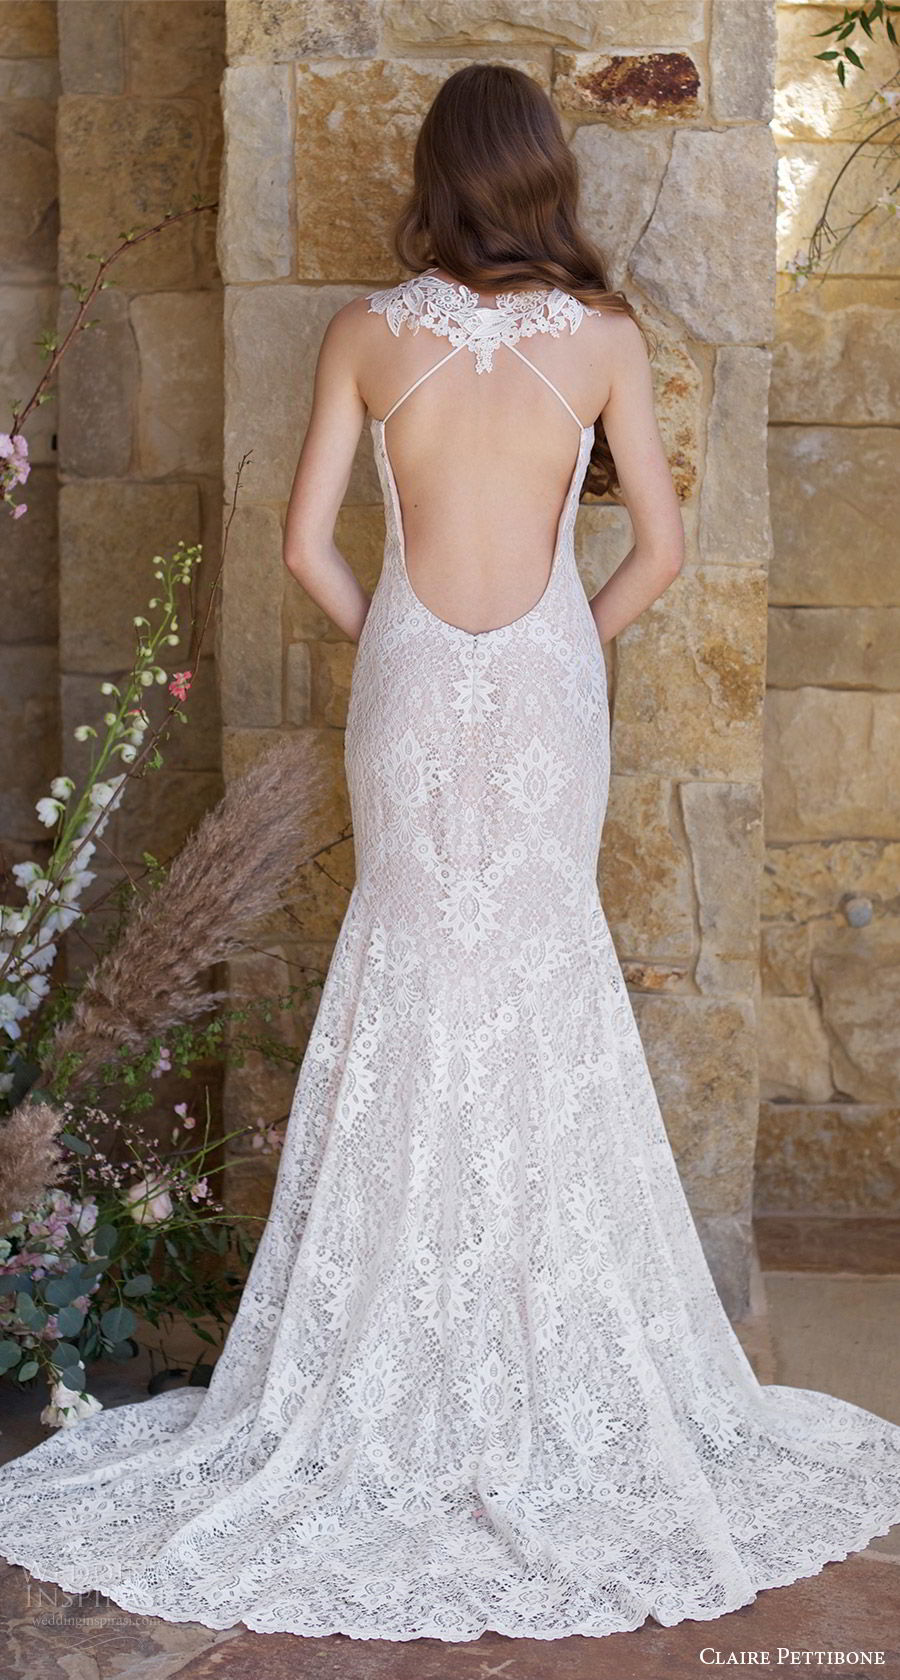 claire pettibone spring 2018 bridal sleeveless lace straps sweetheart lace mermaid wedding dress ( saratoga) bv open back train boho romantic